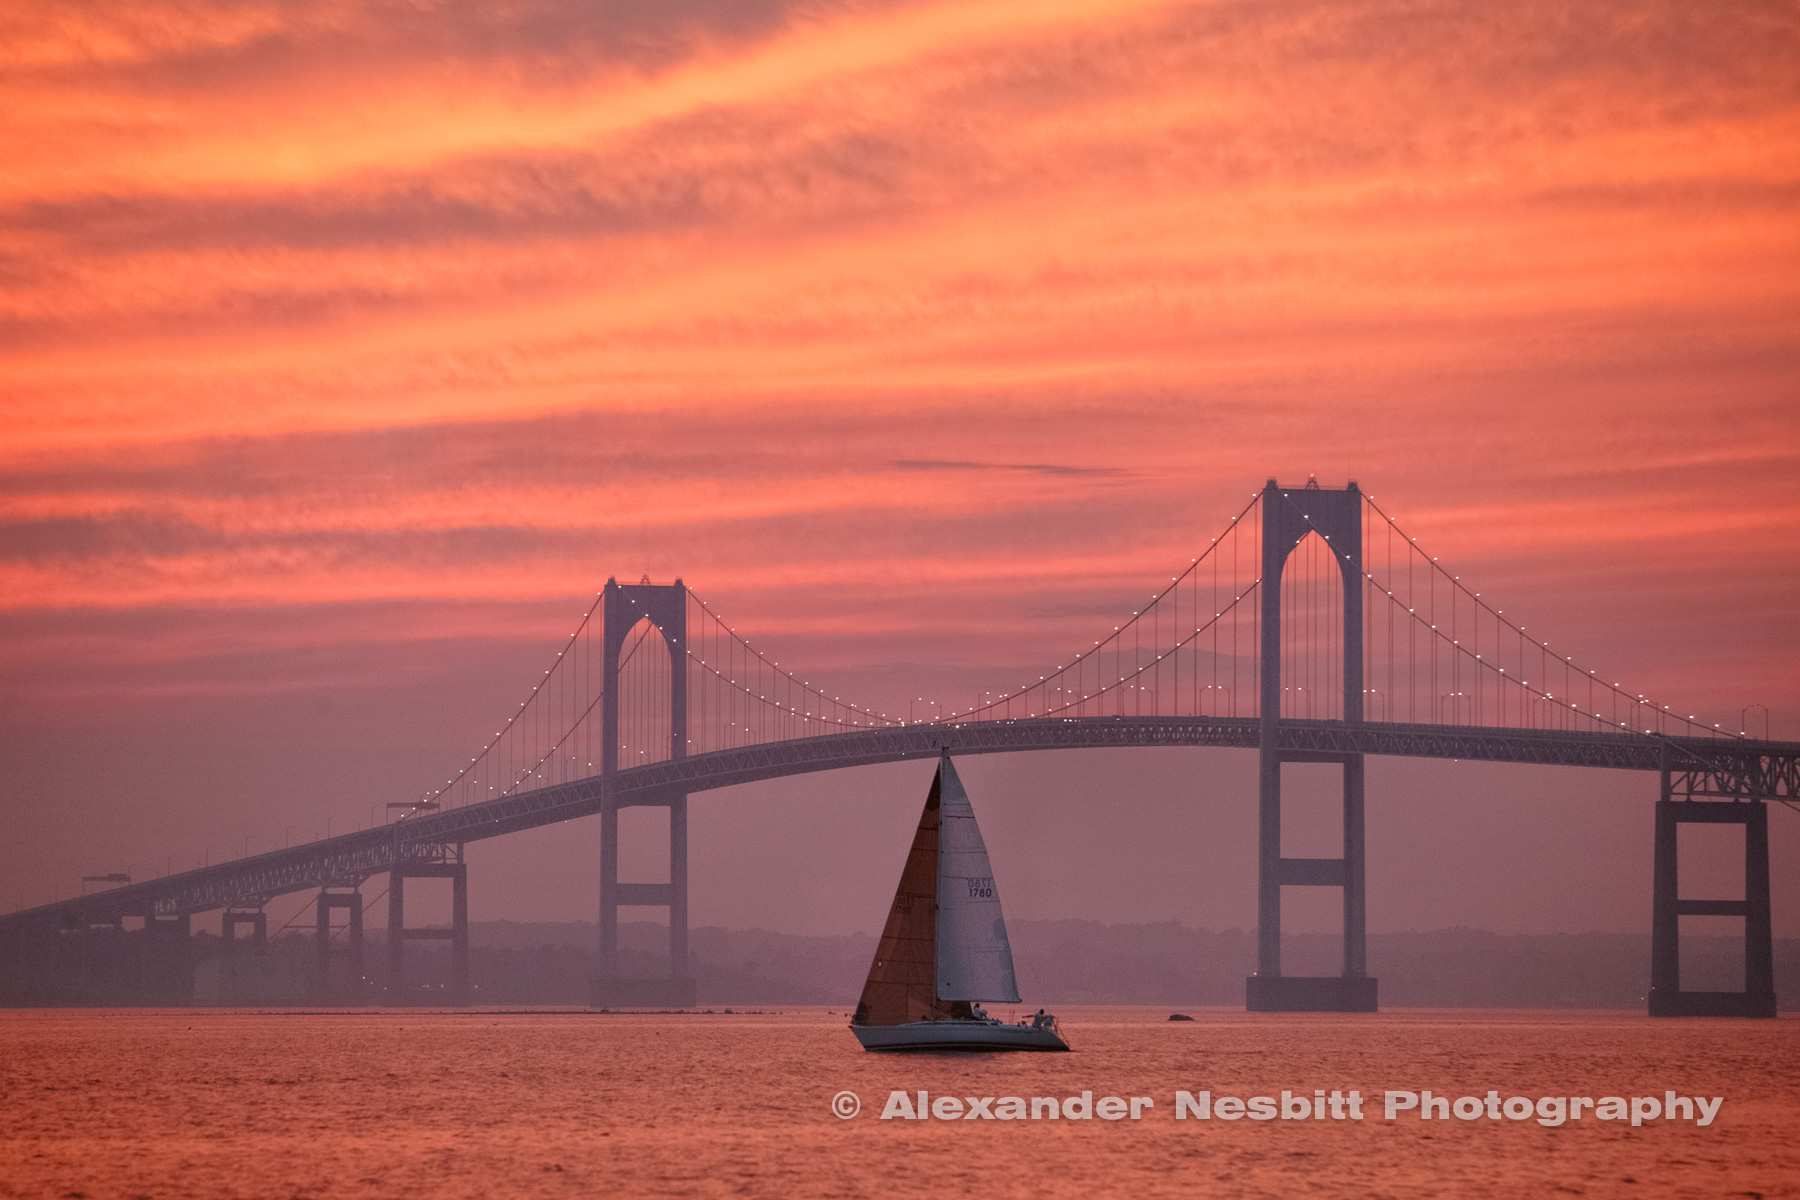 A sailor's delight as a single racing yacht aligns with the Newport Bridge under a fantastic all over pink sunset on Narragansett Bay, Newport RI